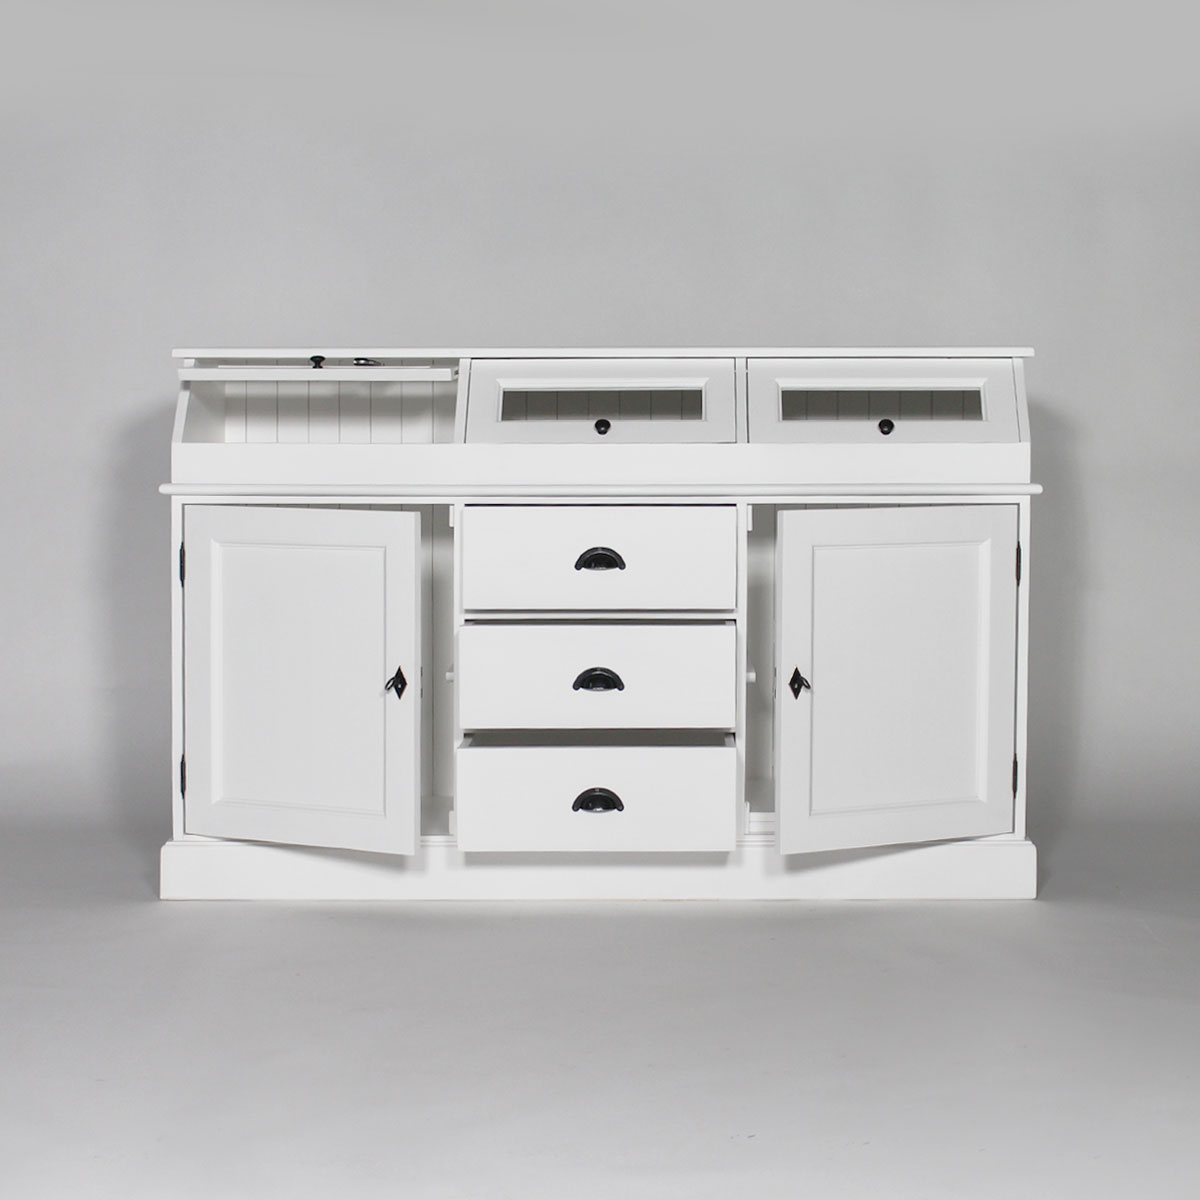 Meuble buffet bas a trappes en pin massif ebay for Meuble buffet bas